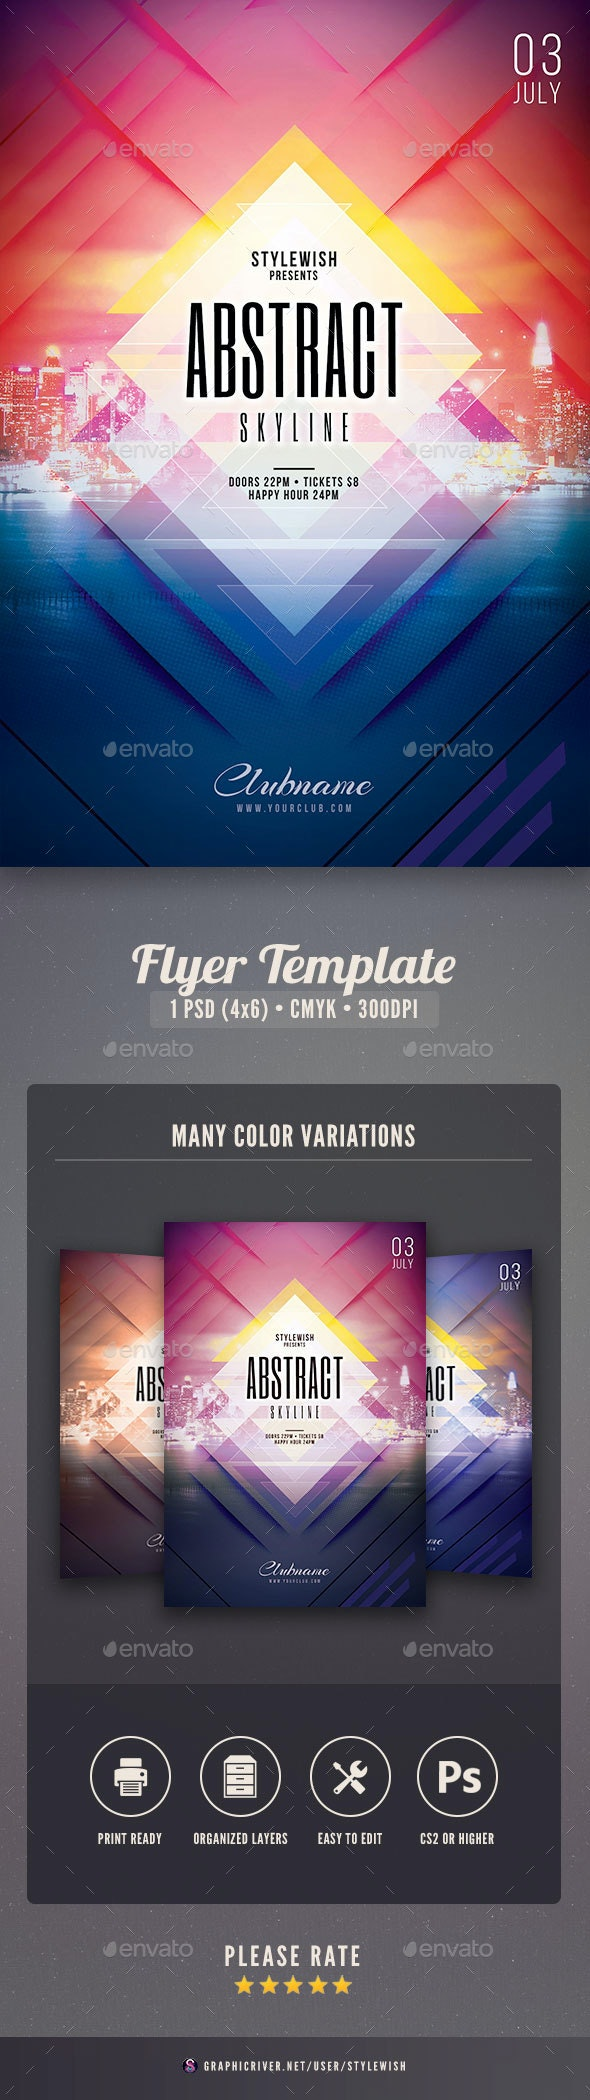 Abstract Skyline Flyer - Clubs & Parties Events